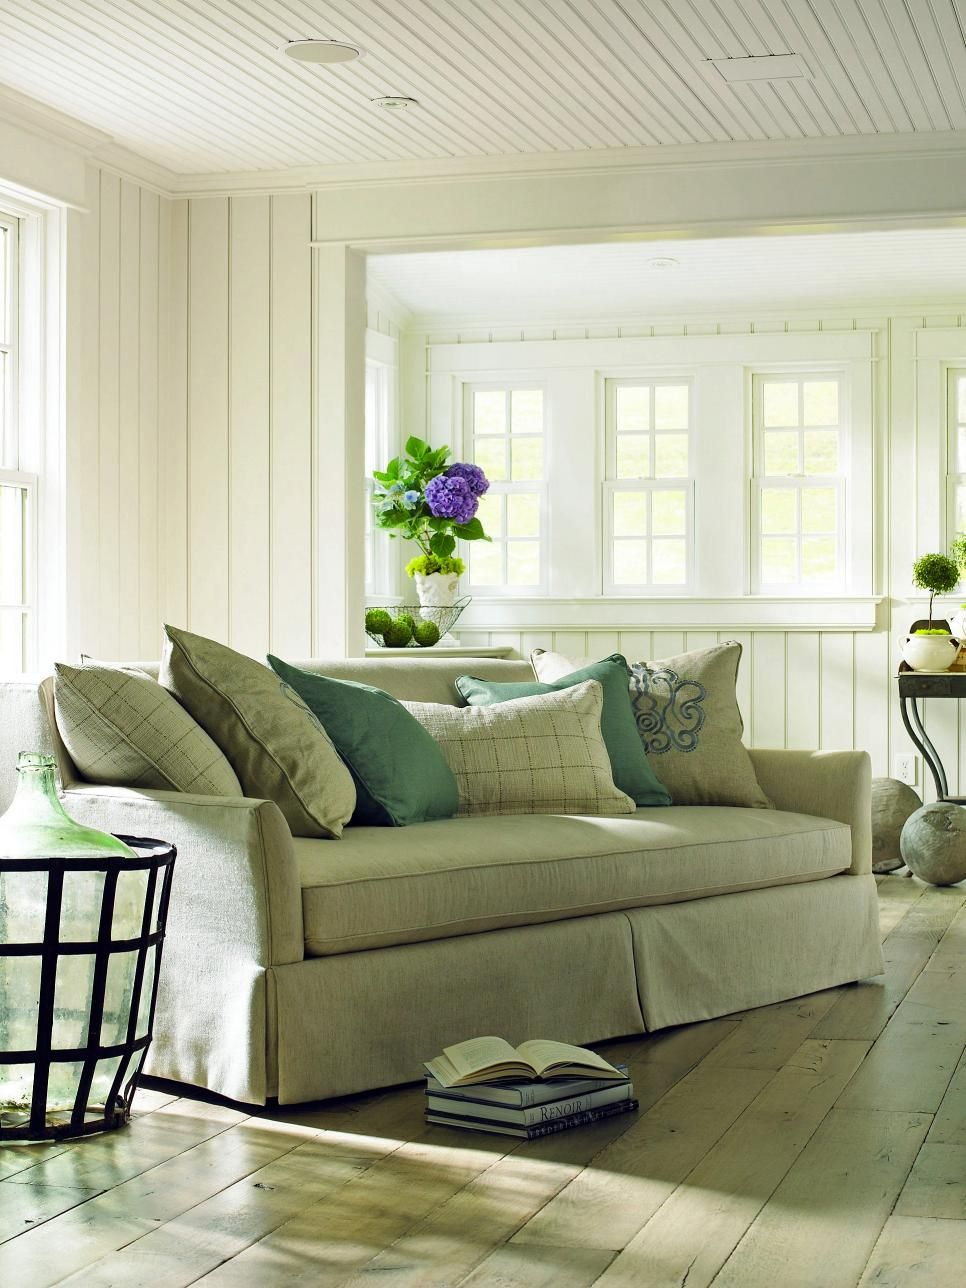 Anyone will feel at home in this shabby chic living room